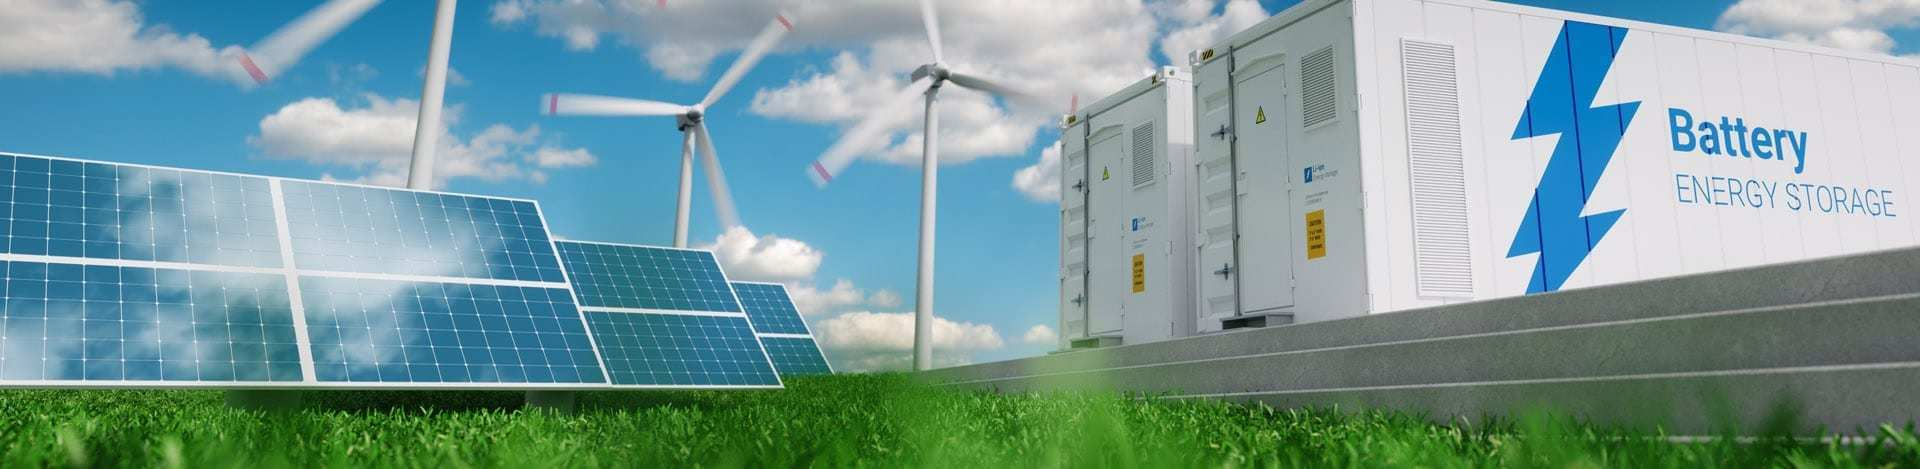 The potential for energy flexibility and energy storage